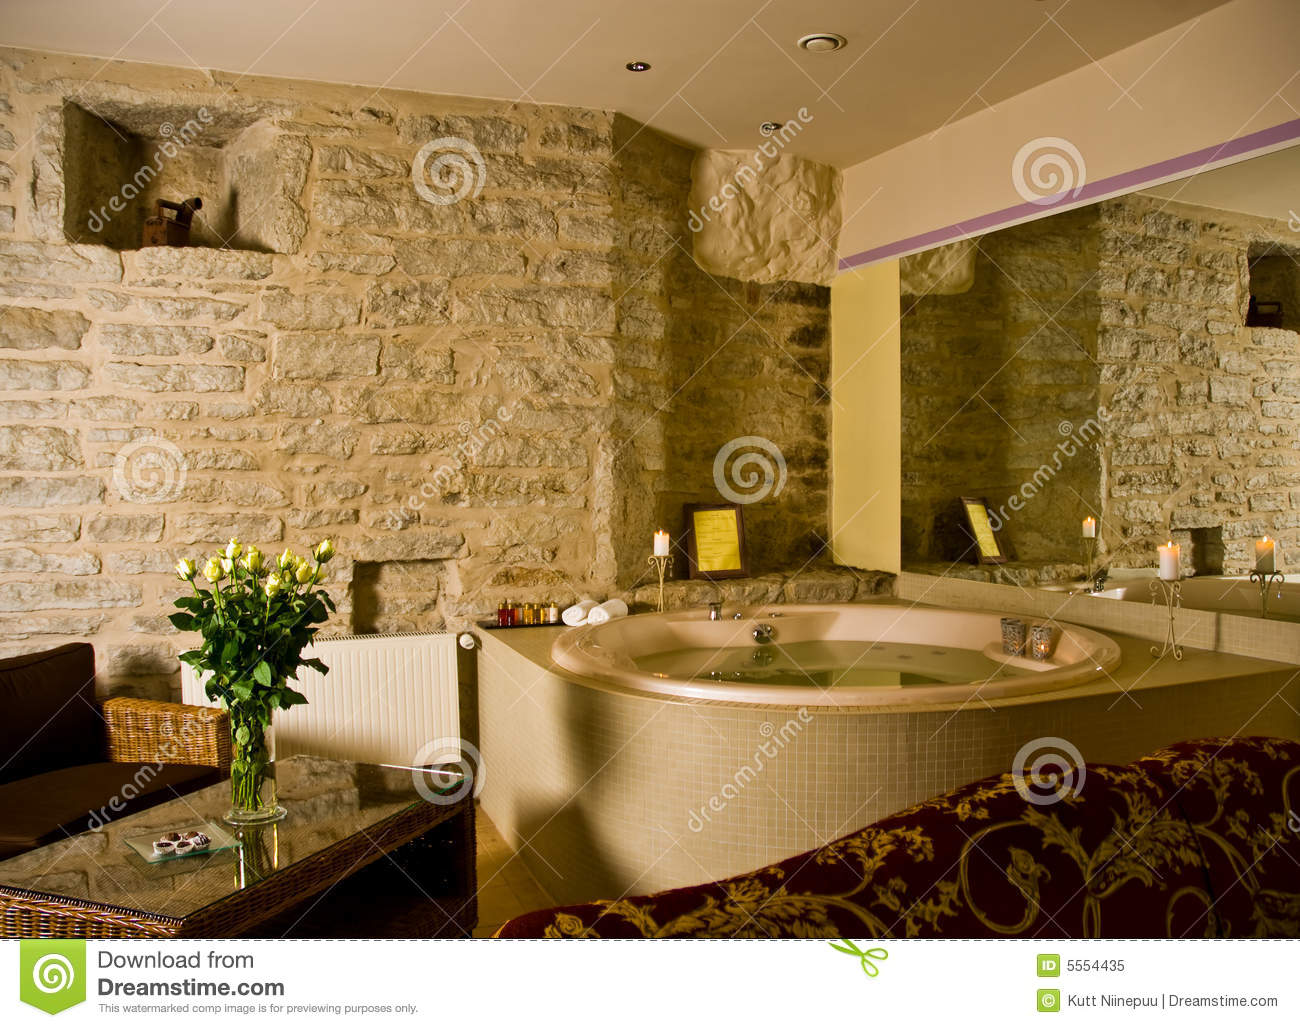 Stunning Jacuzzi Rooms Near Me Pictures - Ancientandautomata.com ...